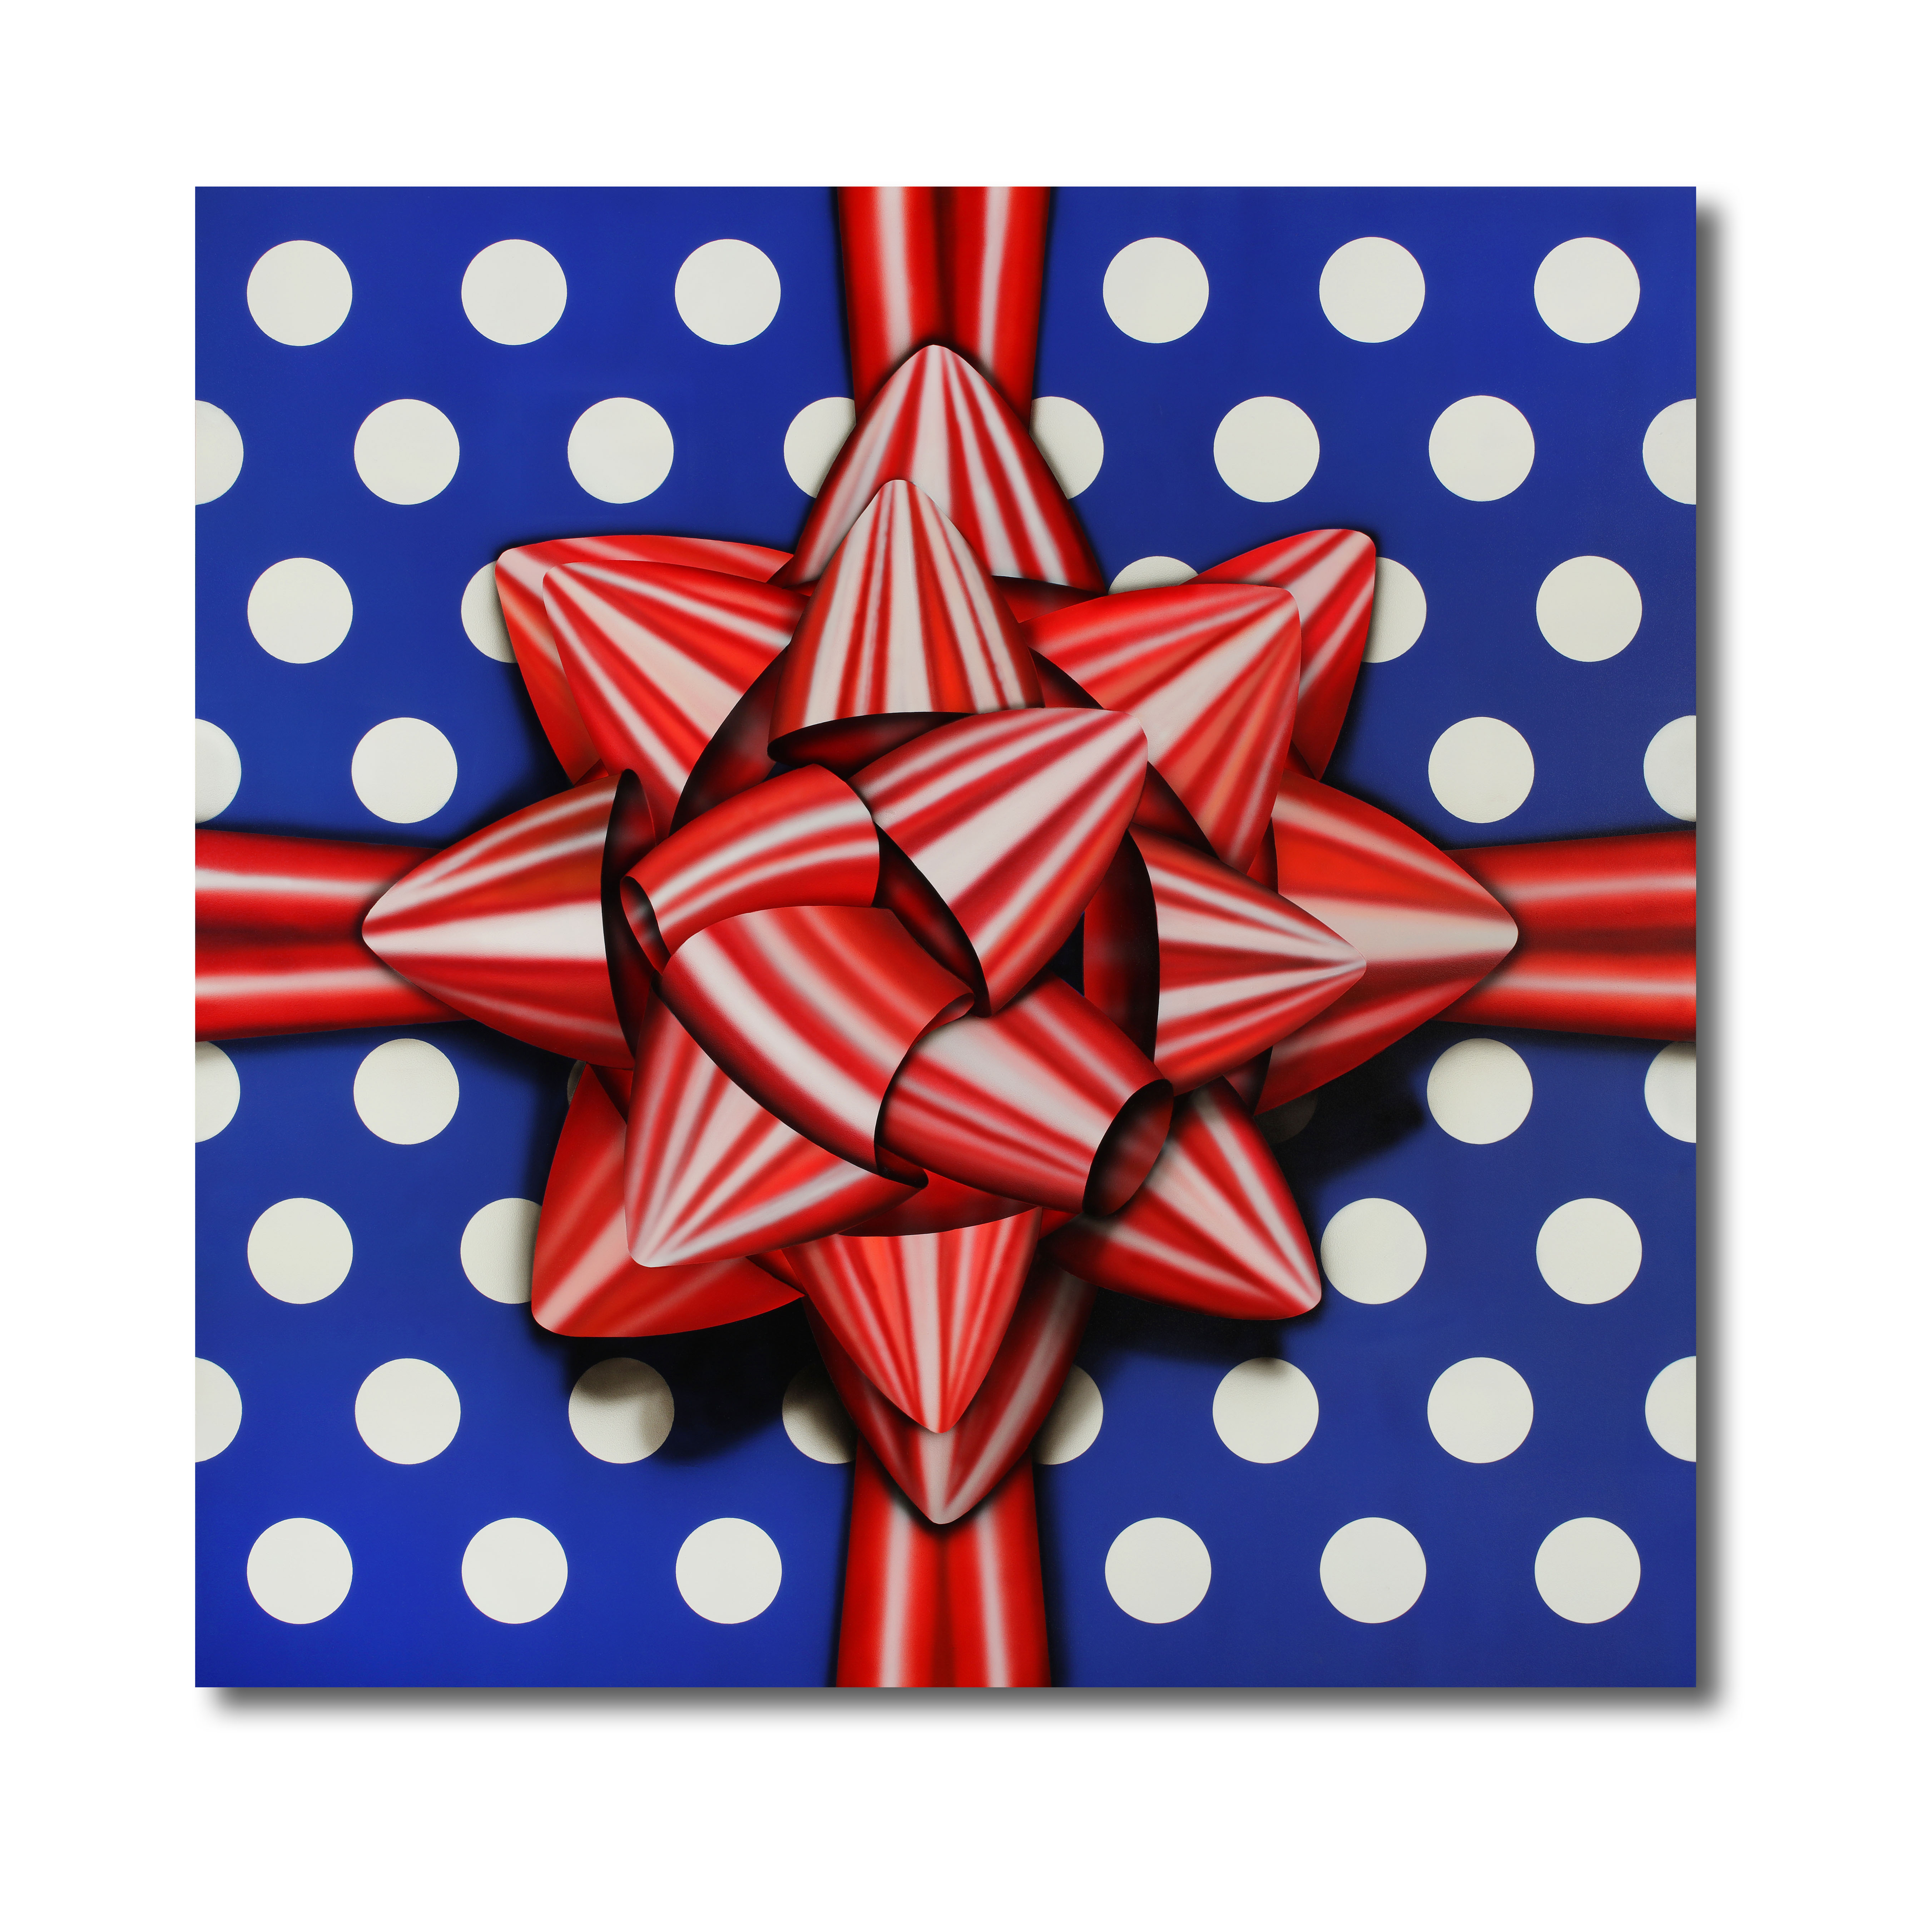 "Title: Red Star Artist: Mark Travers Year: 2016 Medium: Acrylic on wood panel Size: 35.25"" x 35.25"""